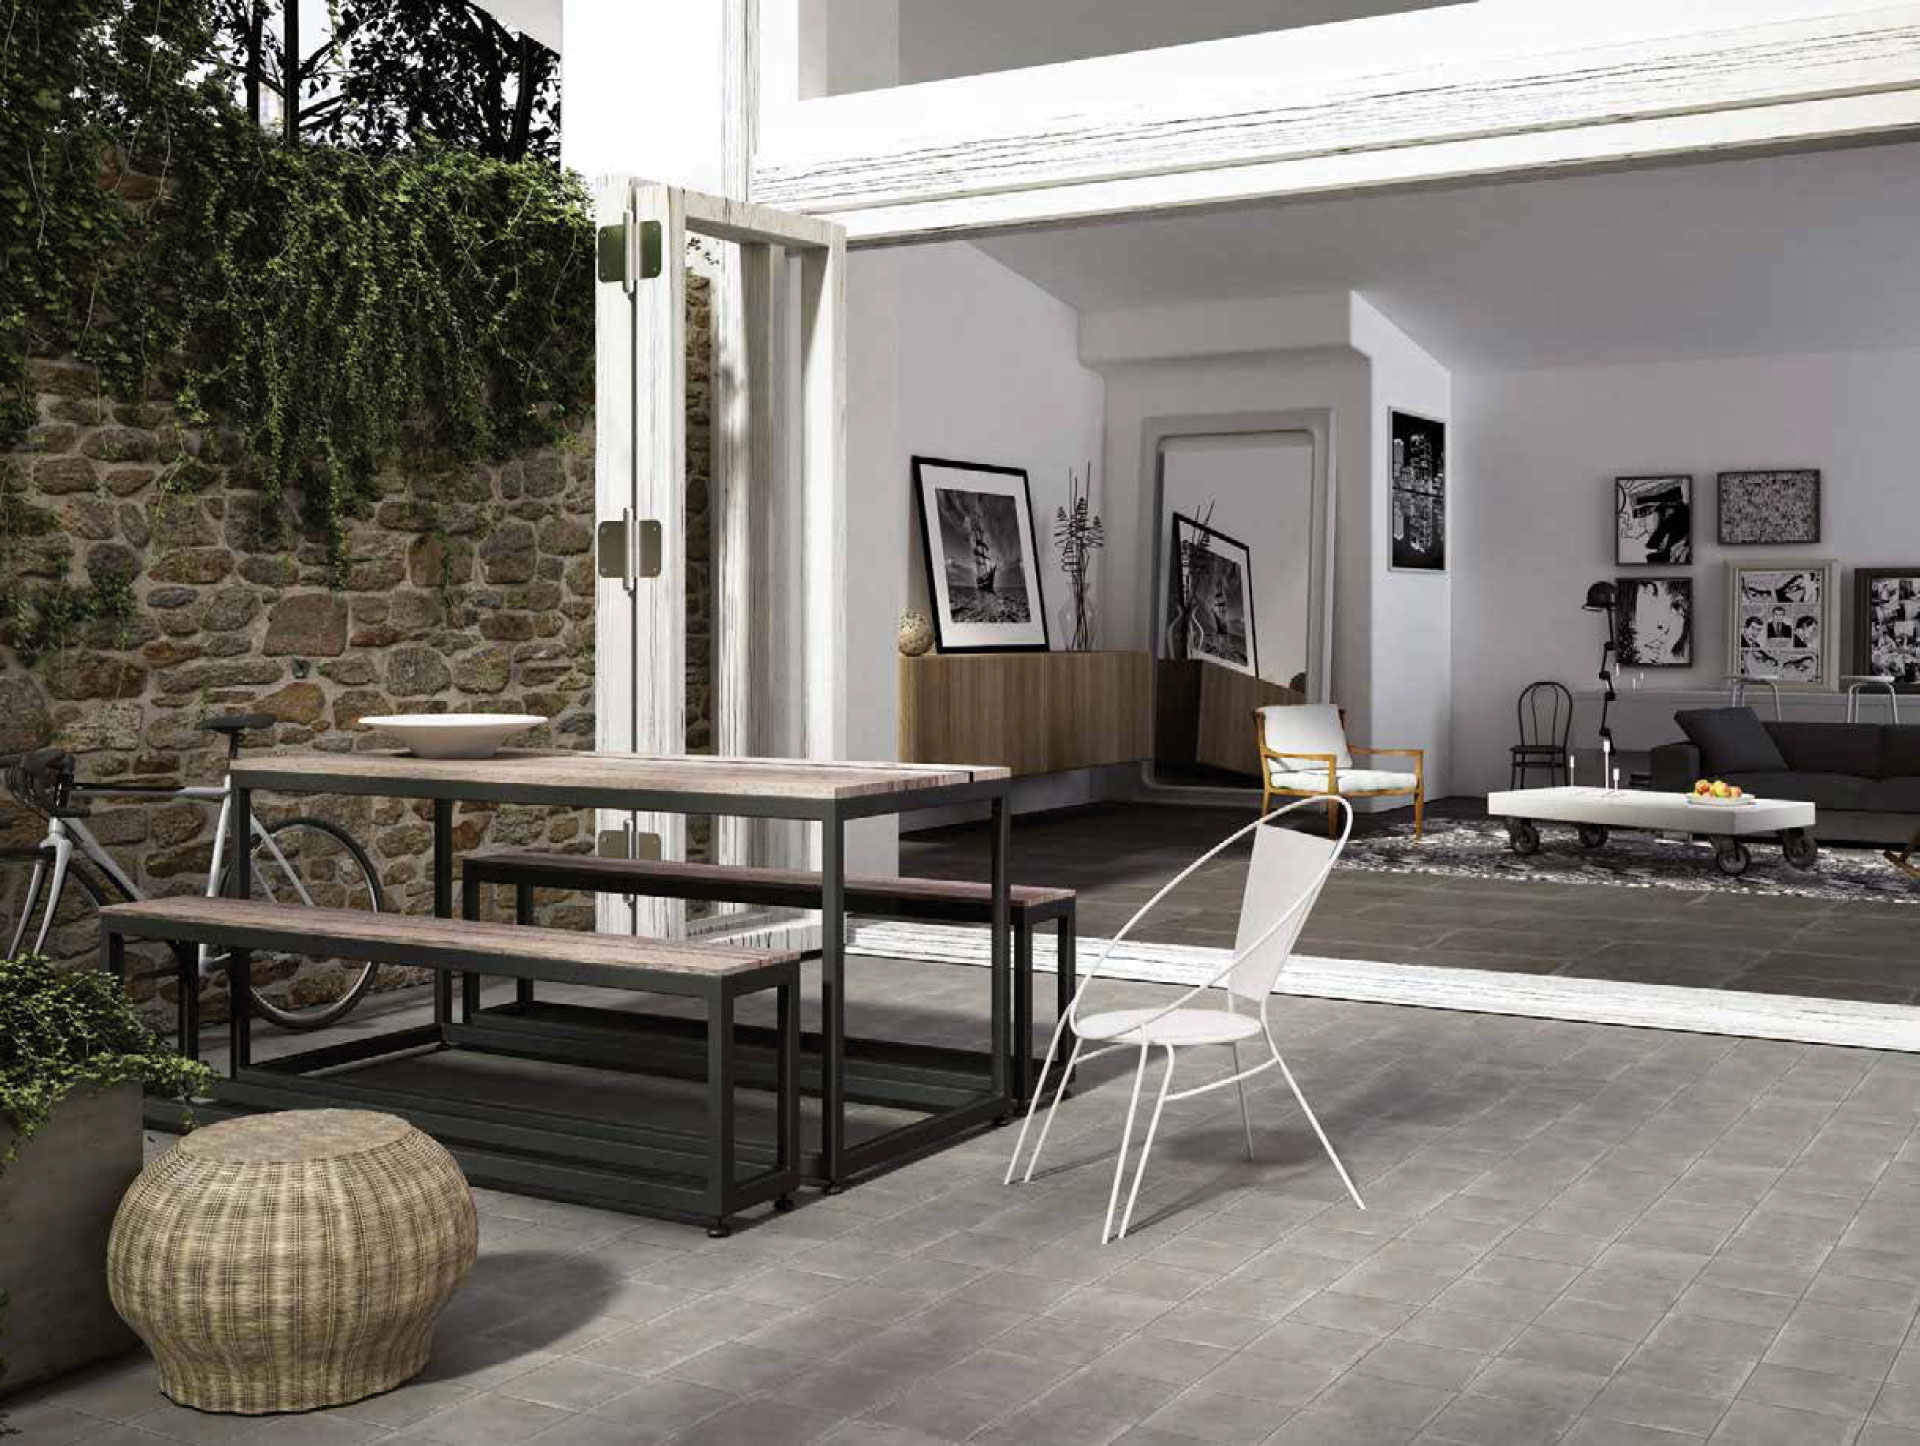 Flooring from the rural tradition in contemporary spaces